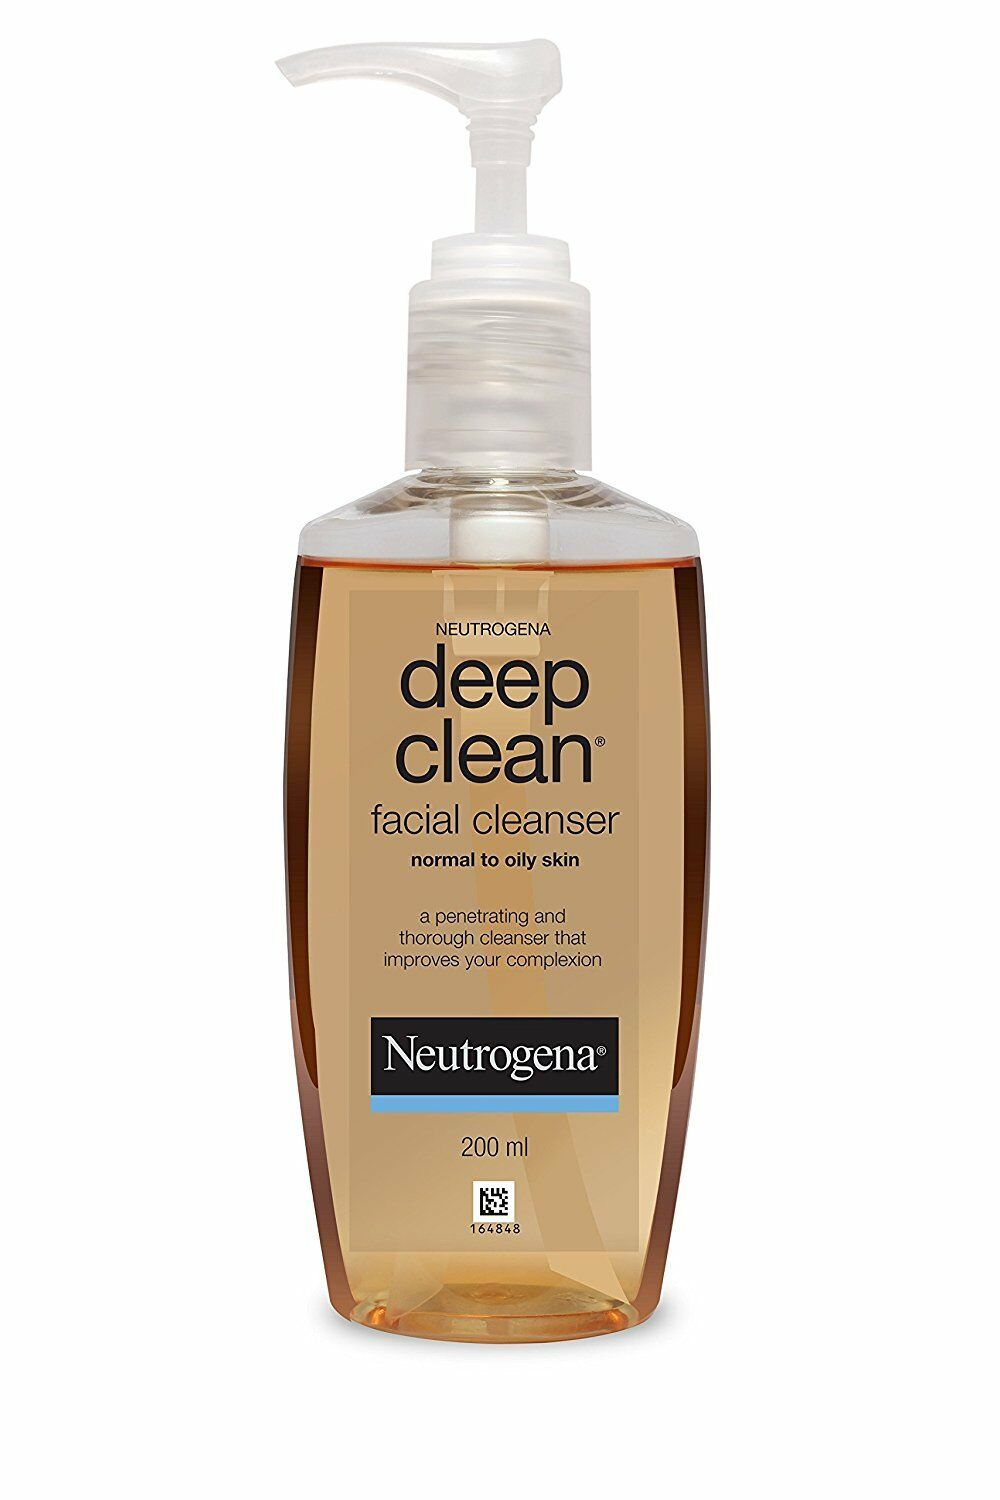 Neutrogena Deep Clean Facial Cleanser with Free Worldwide Shipping - $7.91 - $40.10